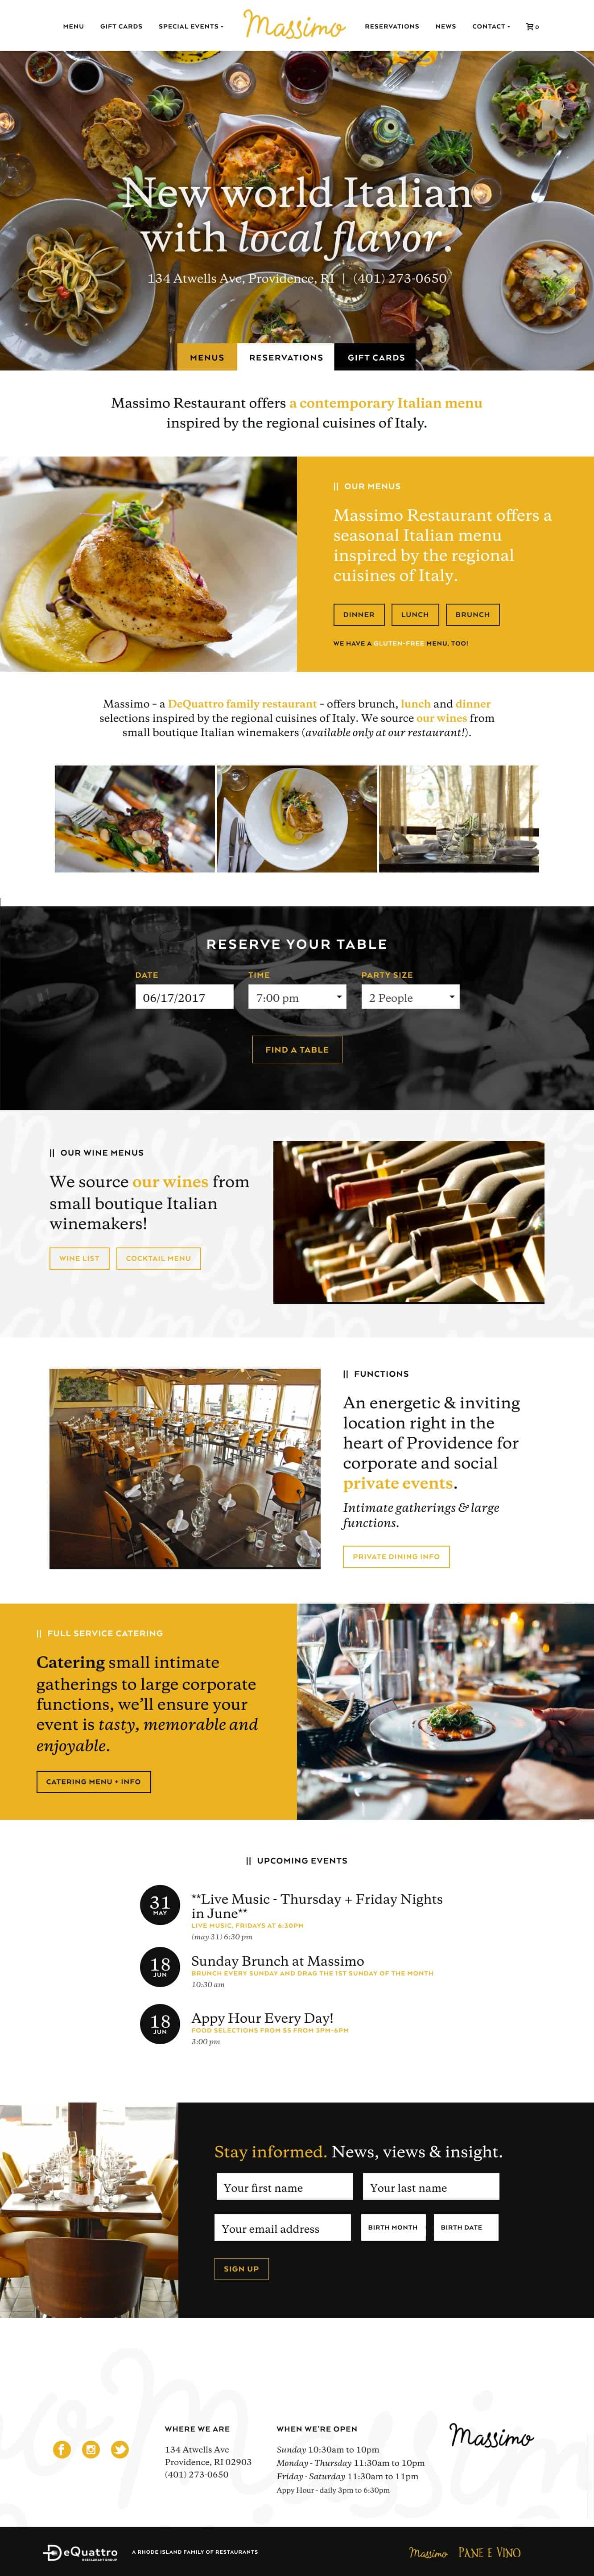 RI Italian restaurant website design and development